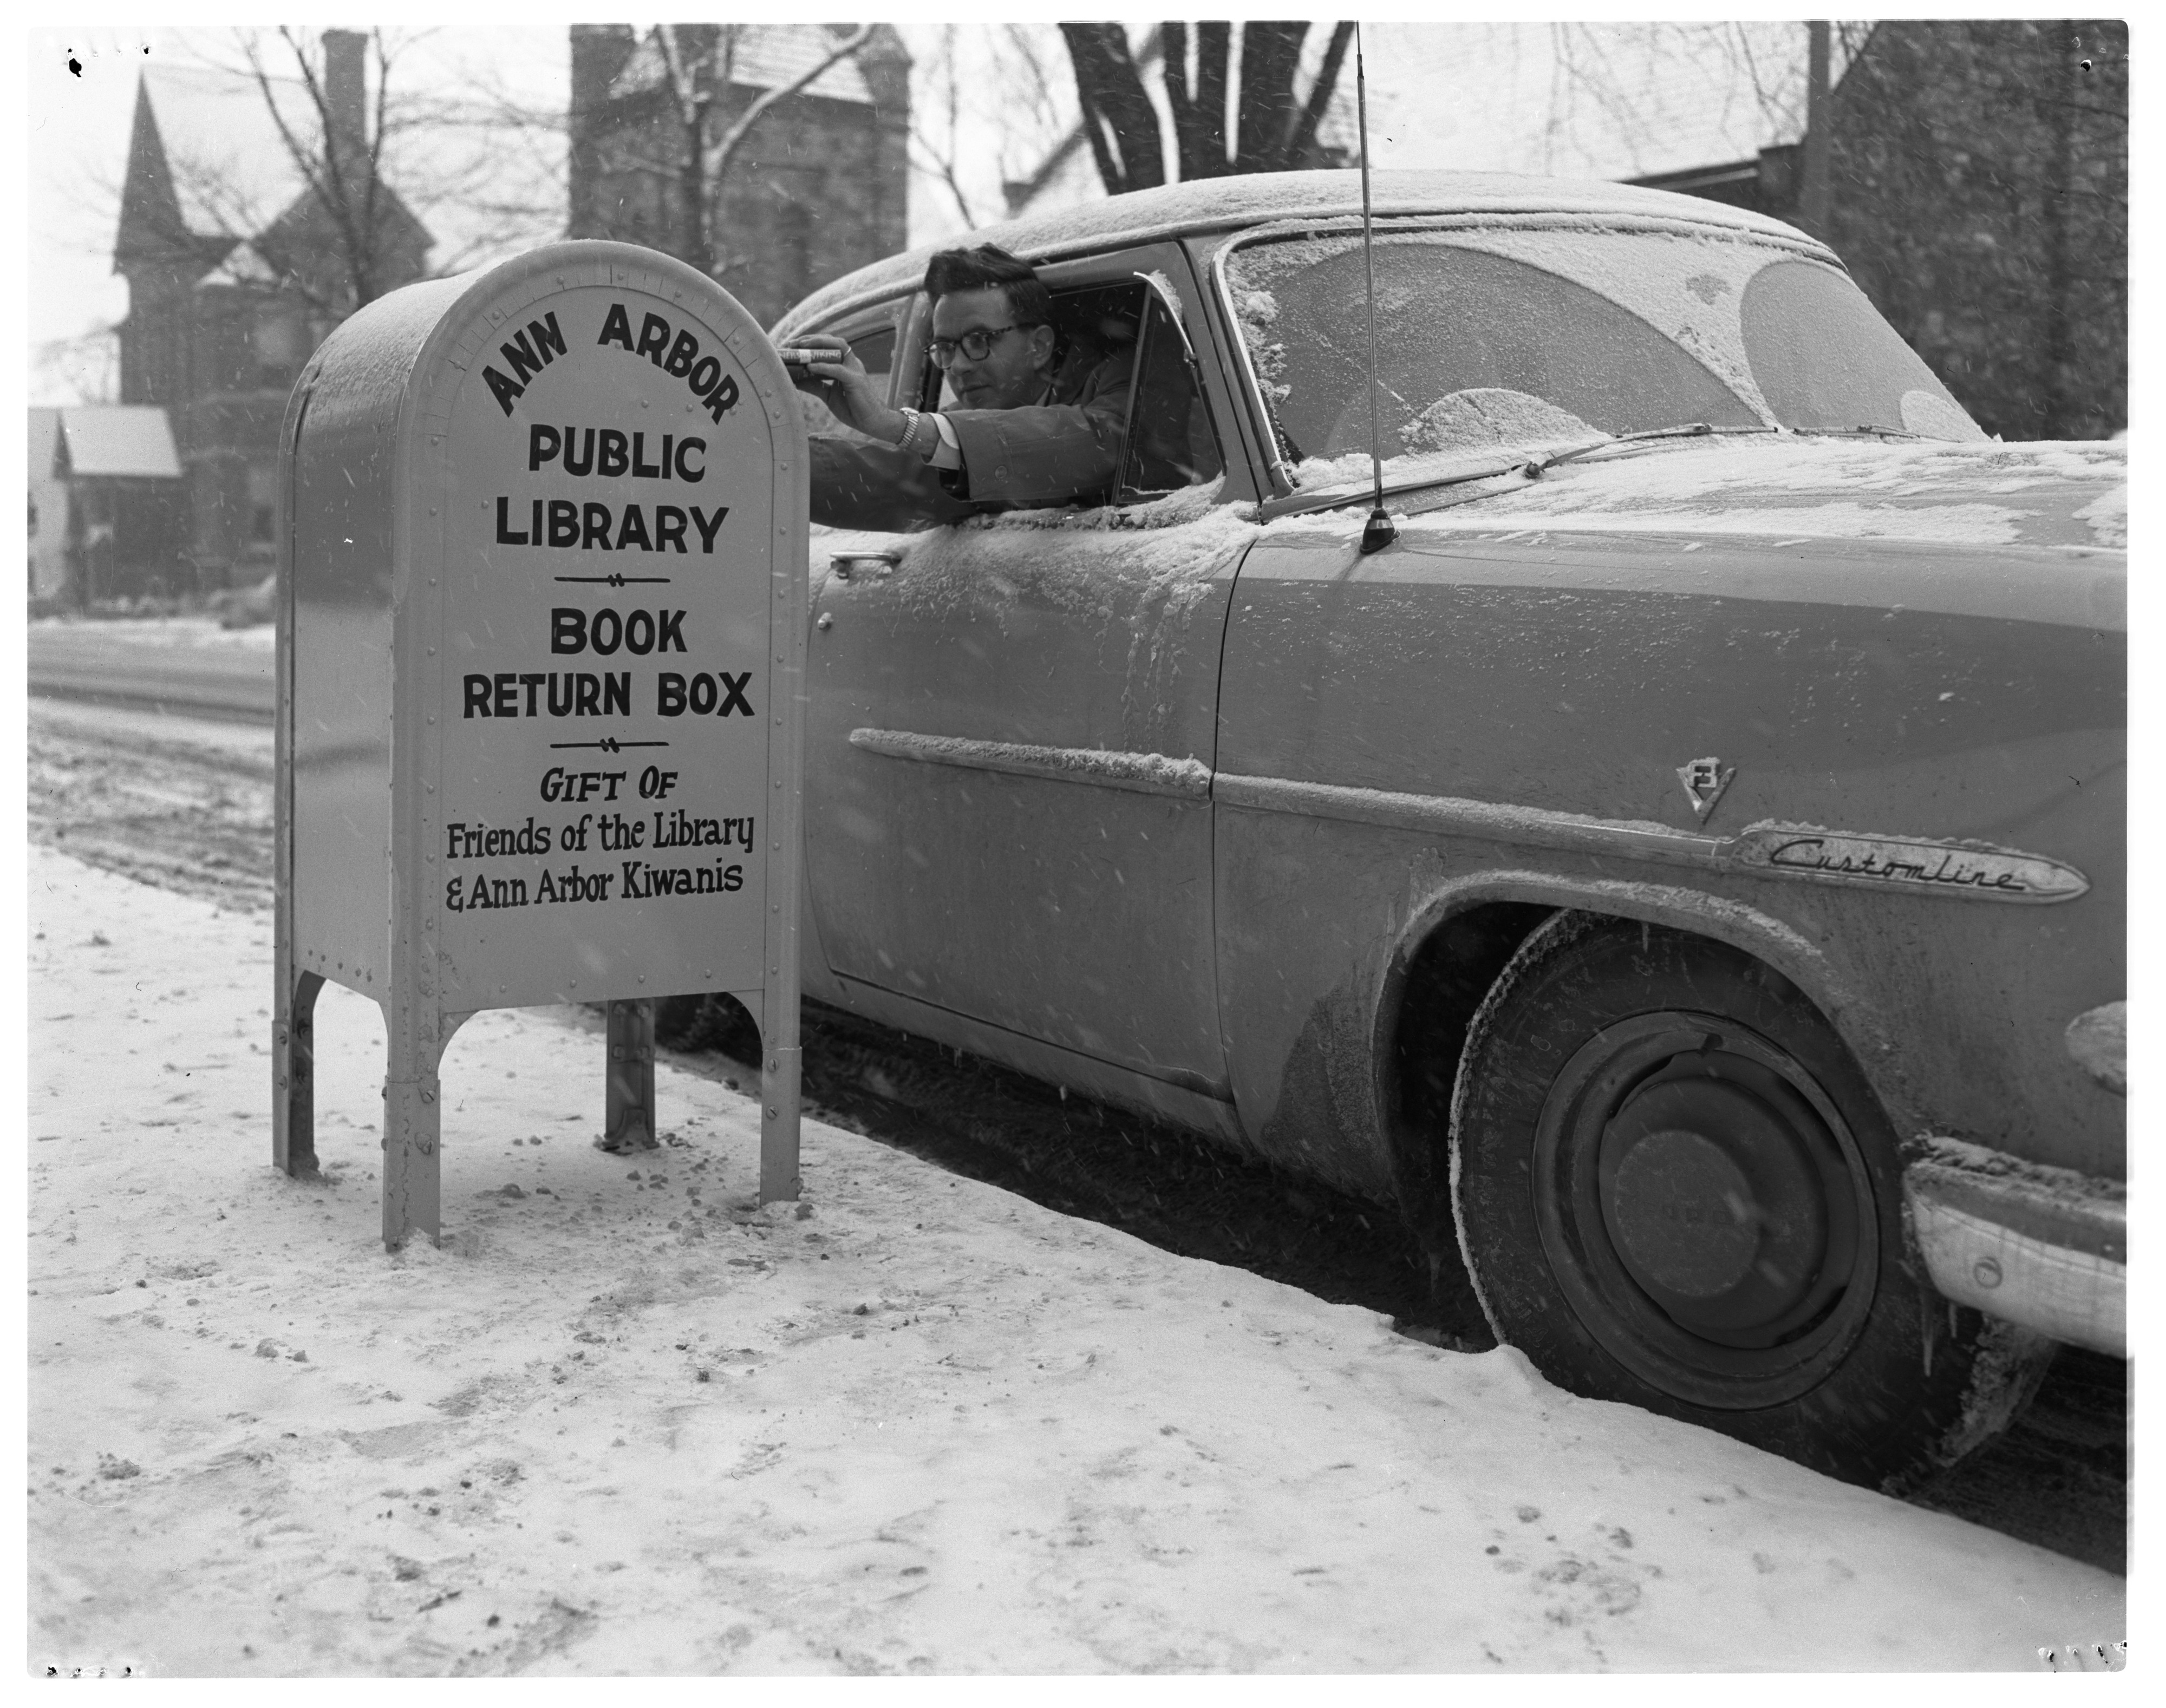 Ann Arbor Public Library's New Drop Box, December 1953 image